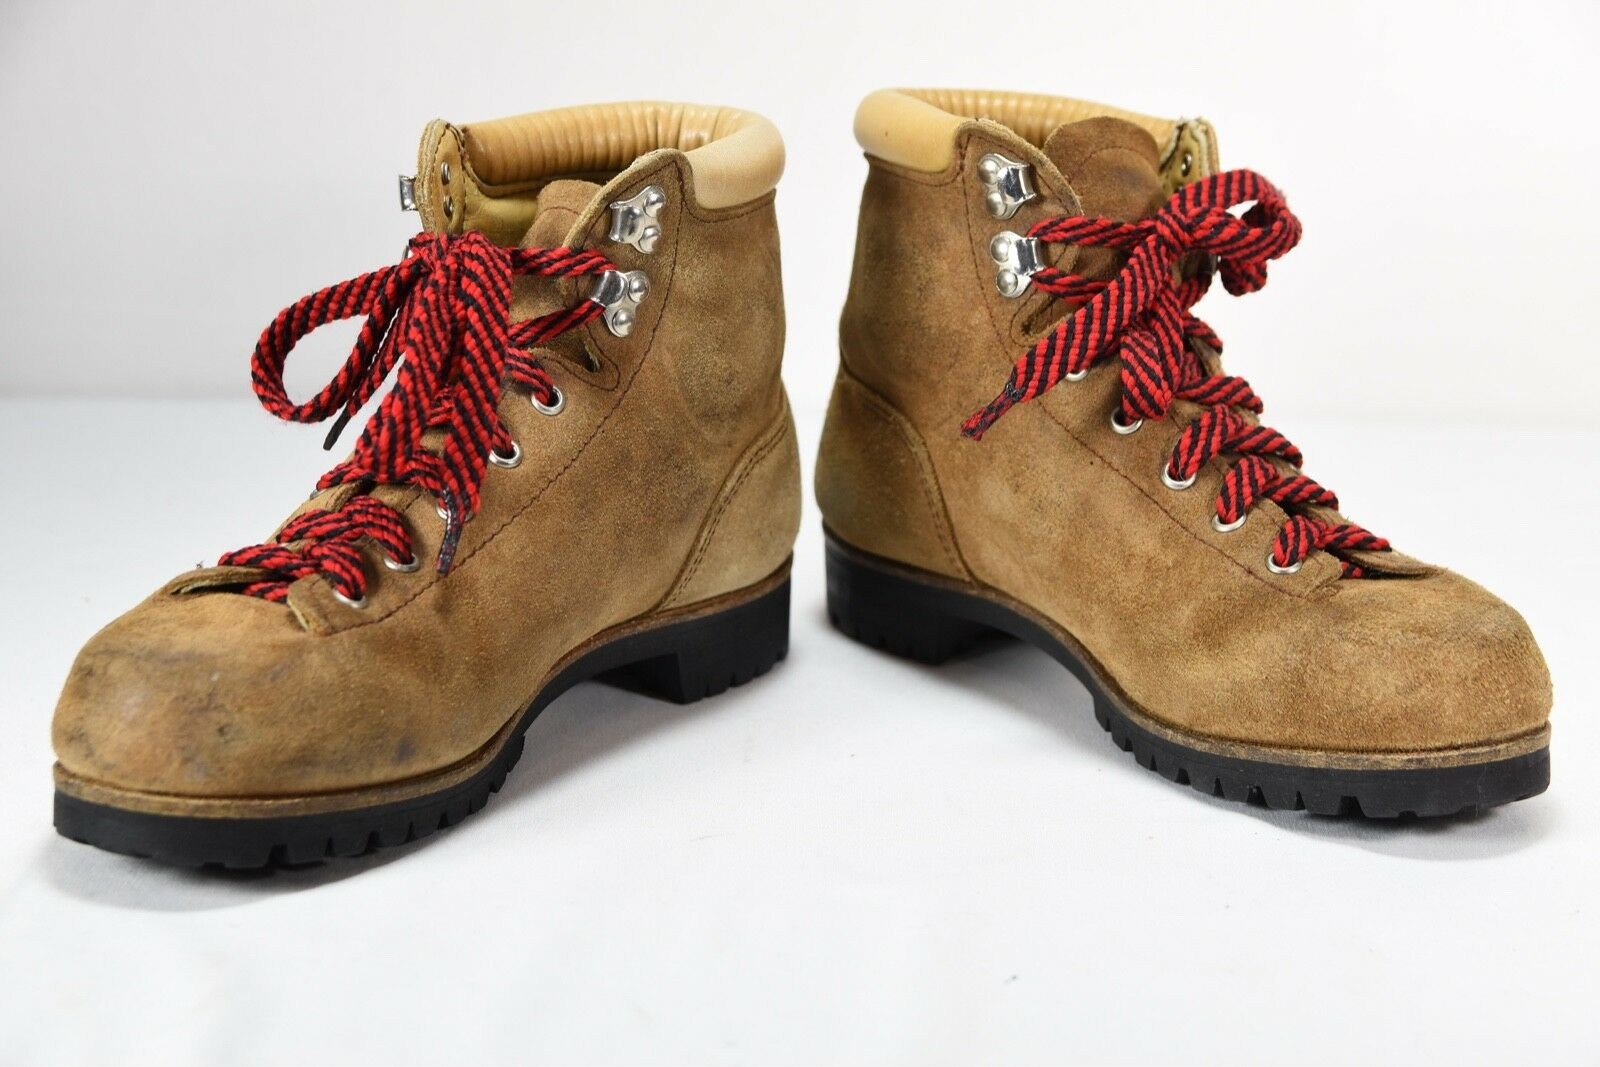 Vintage VASQUE Women's Tan Leather Hiking Boots Model 7508 Size 7.5 Red Laces